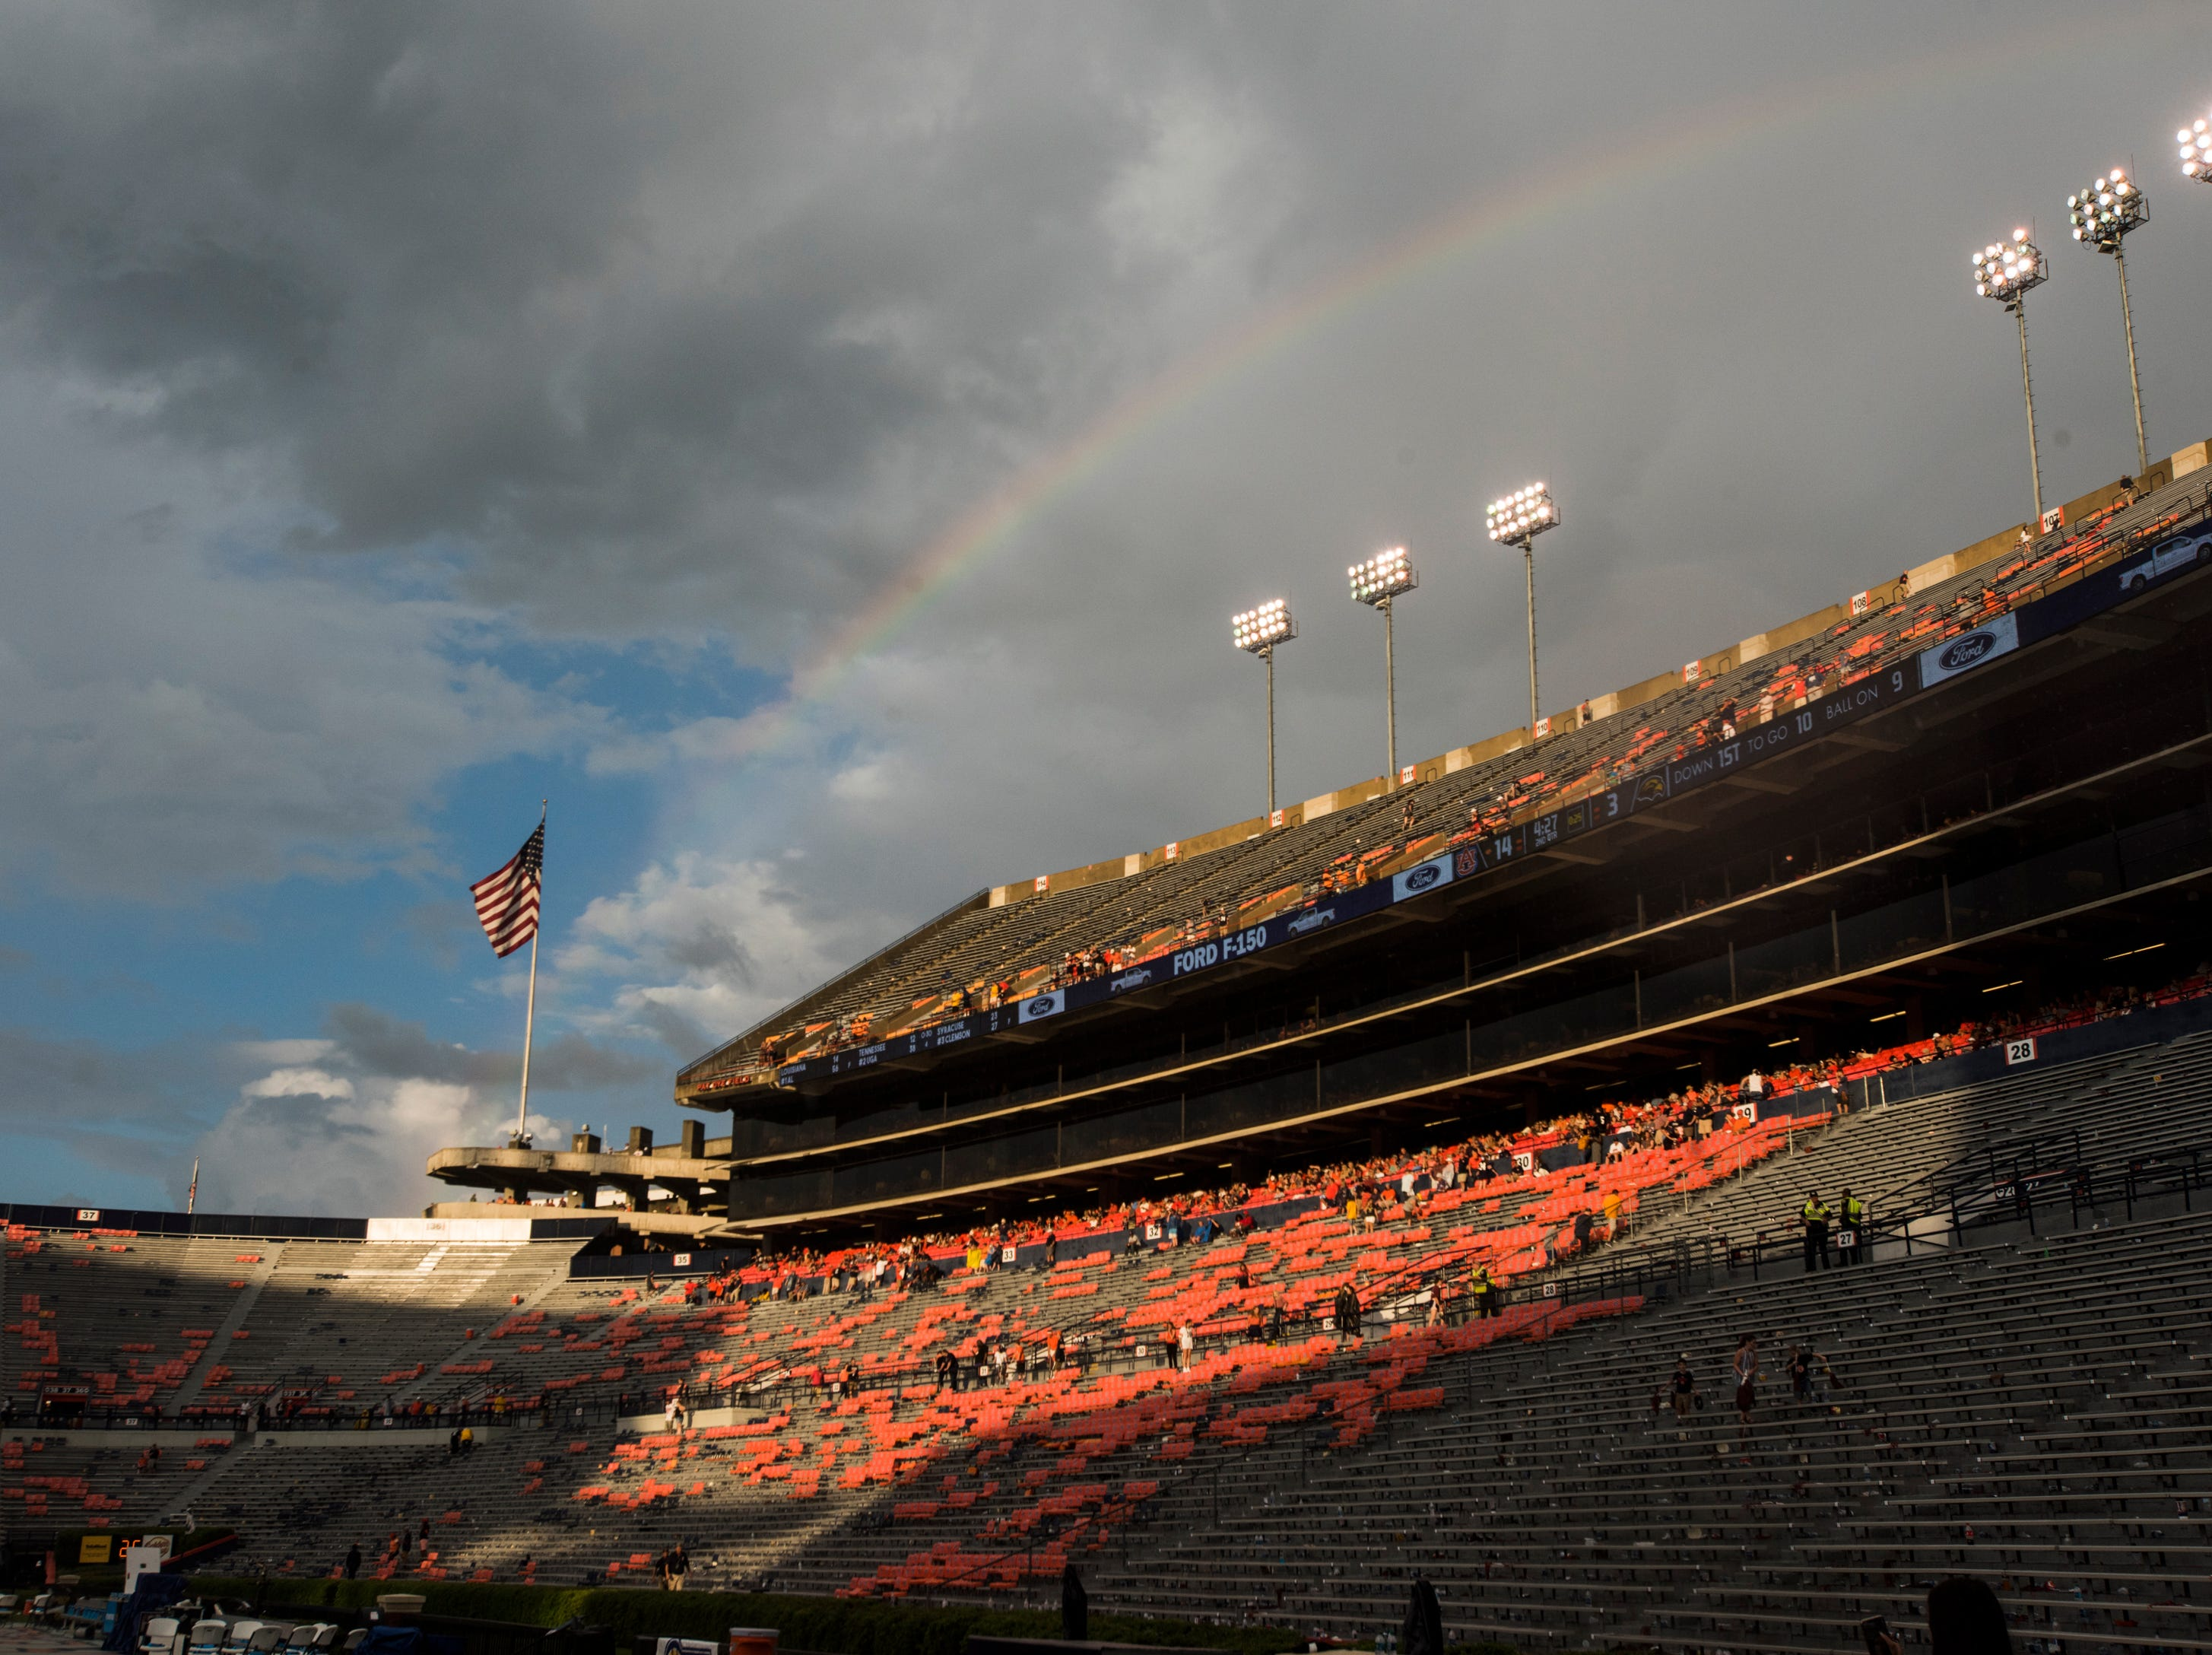 The sun comes out and a rainbow is see as fans and players wait for a weather delay at Jordan-Hare Stadium in Auburn, Ala., on Saturday, Sept. 29, 2018. Auburn leads Southern Miss 14-3, the game went into a weather delay with 4:27 left in the second quarter.